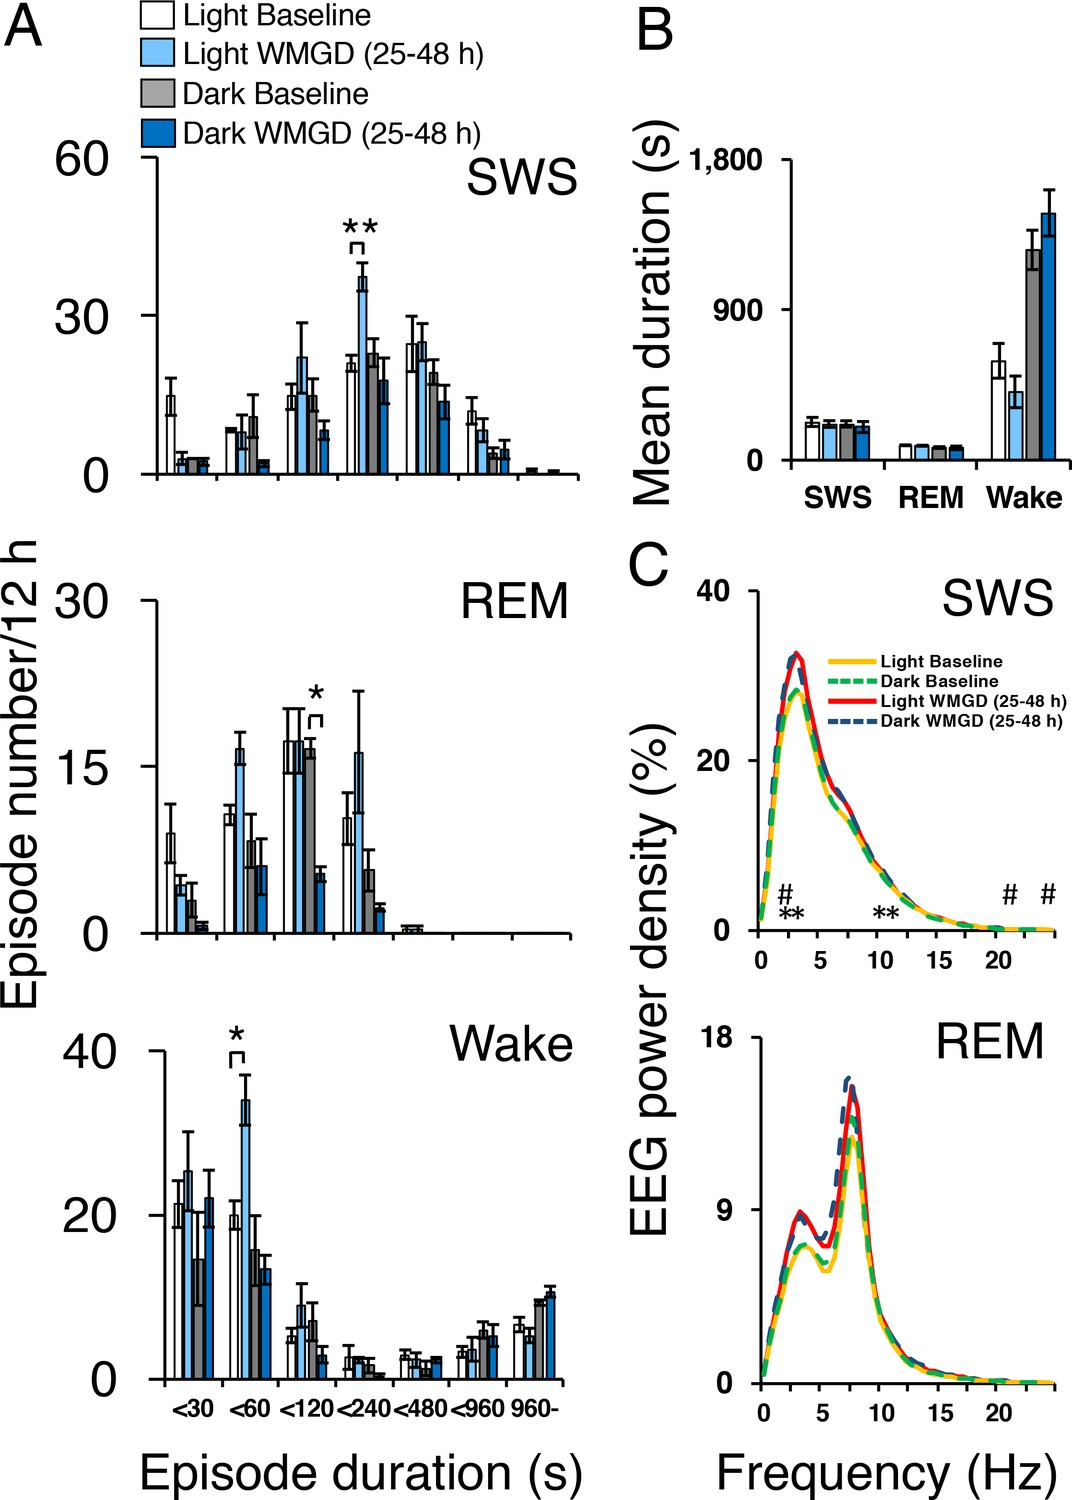 Chemogenetic Inhibition Of The Medial Prefrontal Cortex Reverses Emg Hb Wiring Diagram Sleep Wake Profiles Under Baseline And Wire Mesh Grid Device Wmgd Conditions In Mice For A 2548 Hr Period Assessed By Eeg Recordings